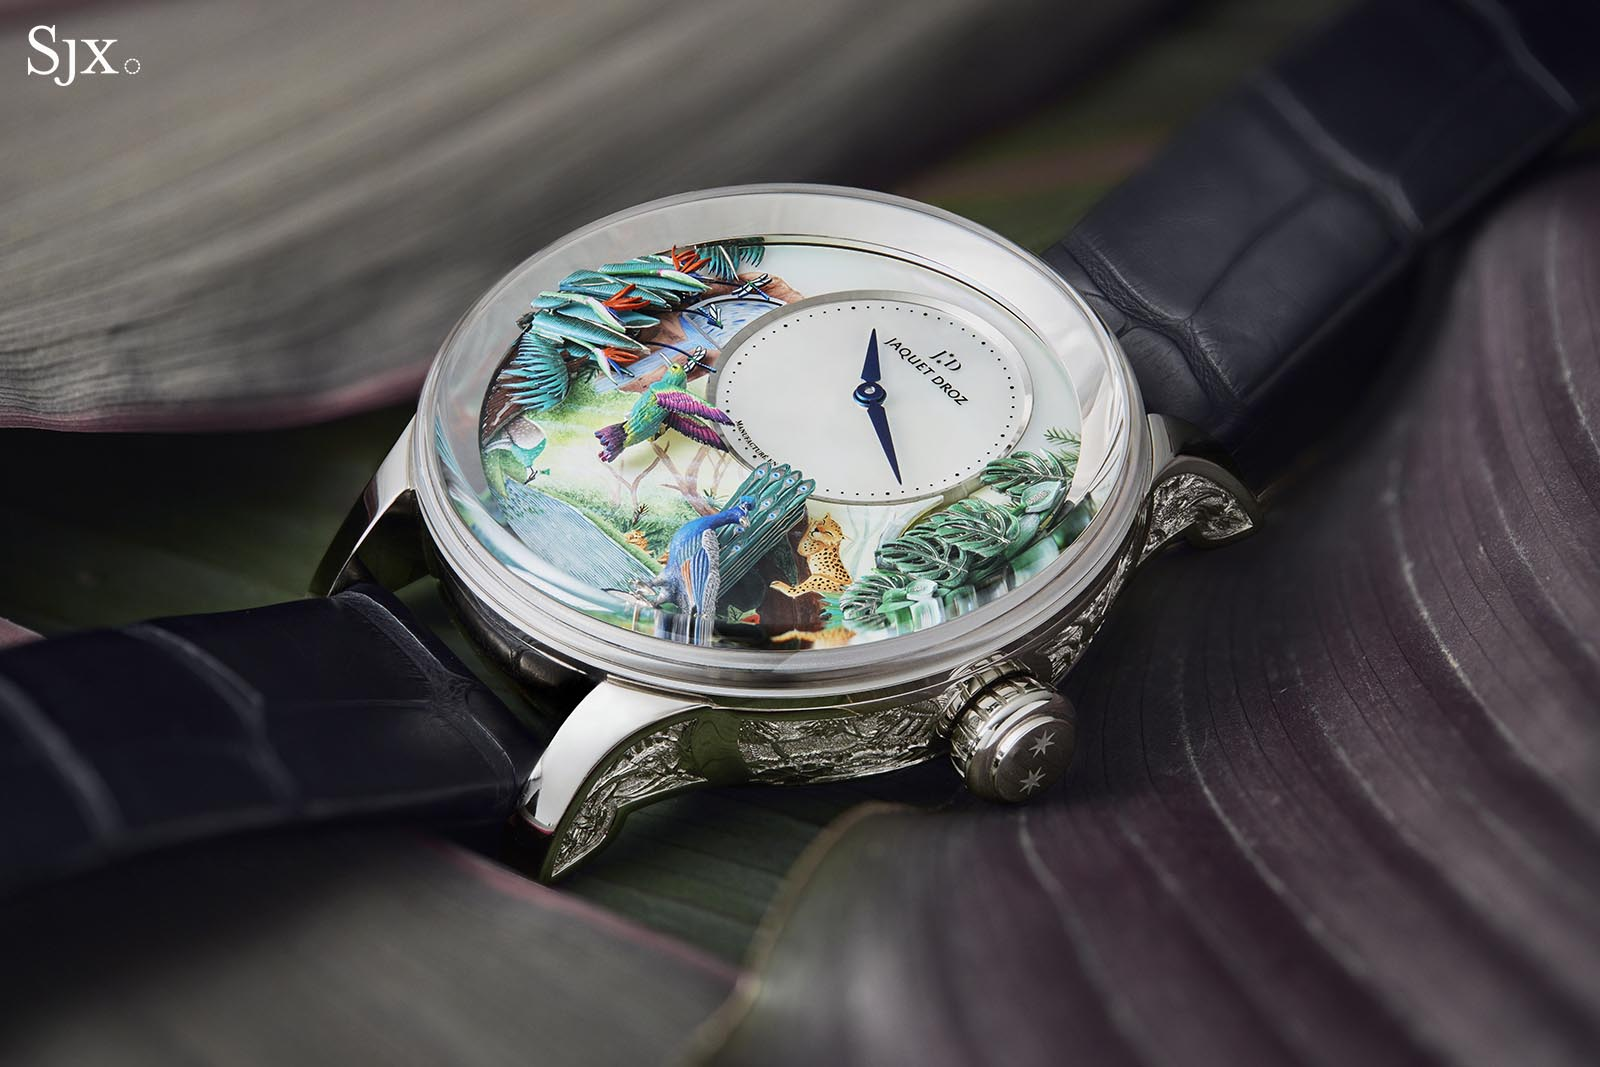 Jaquet Droz Tropical Bird Repeater 11